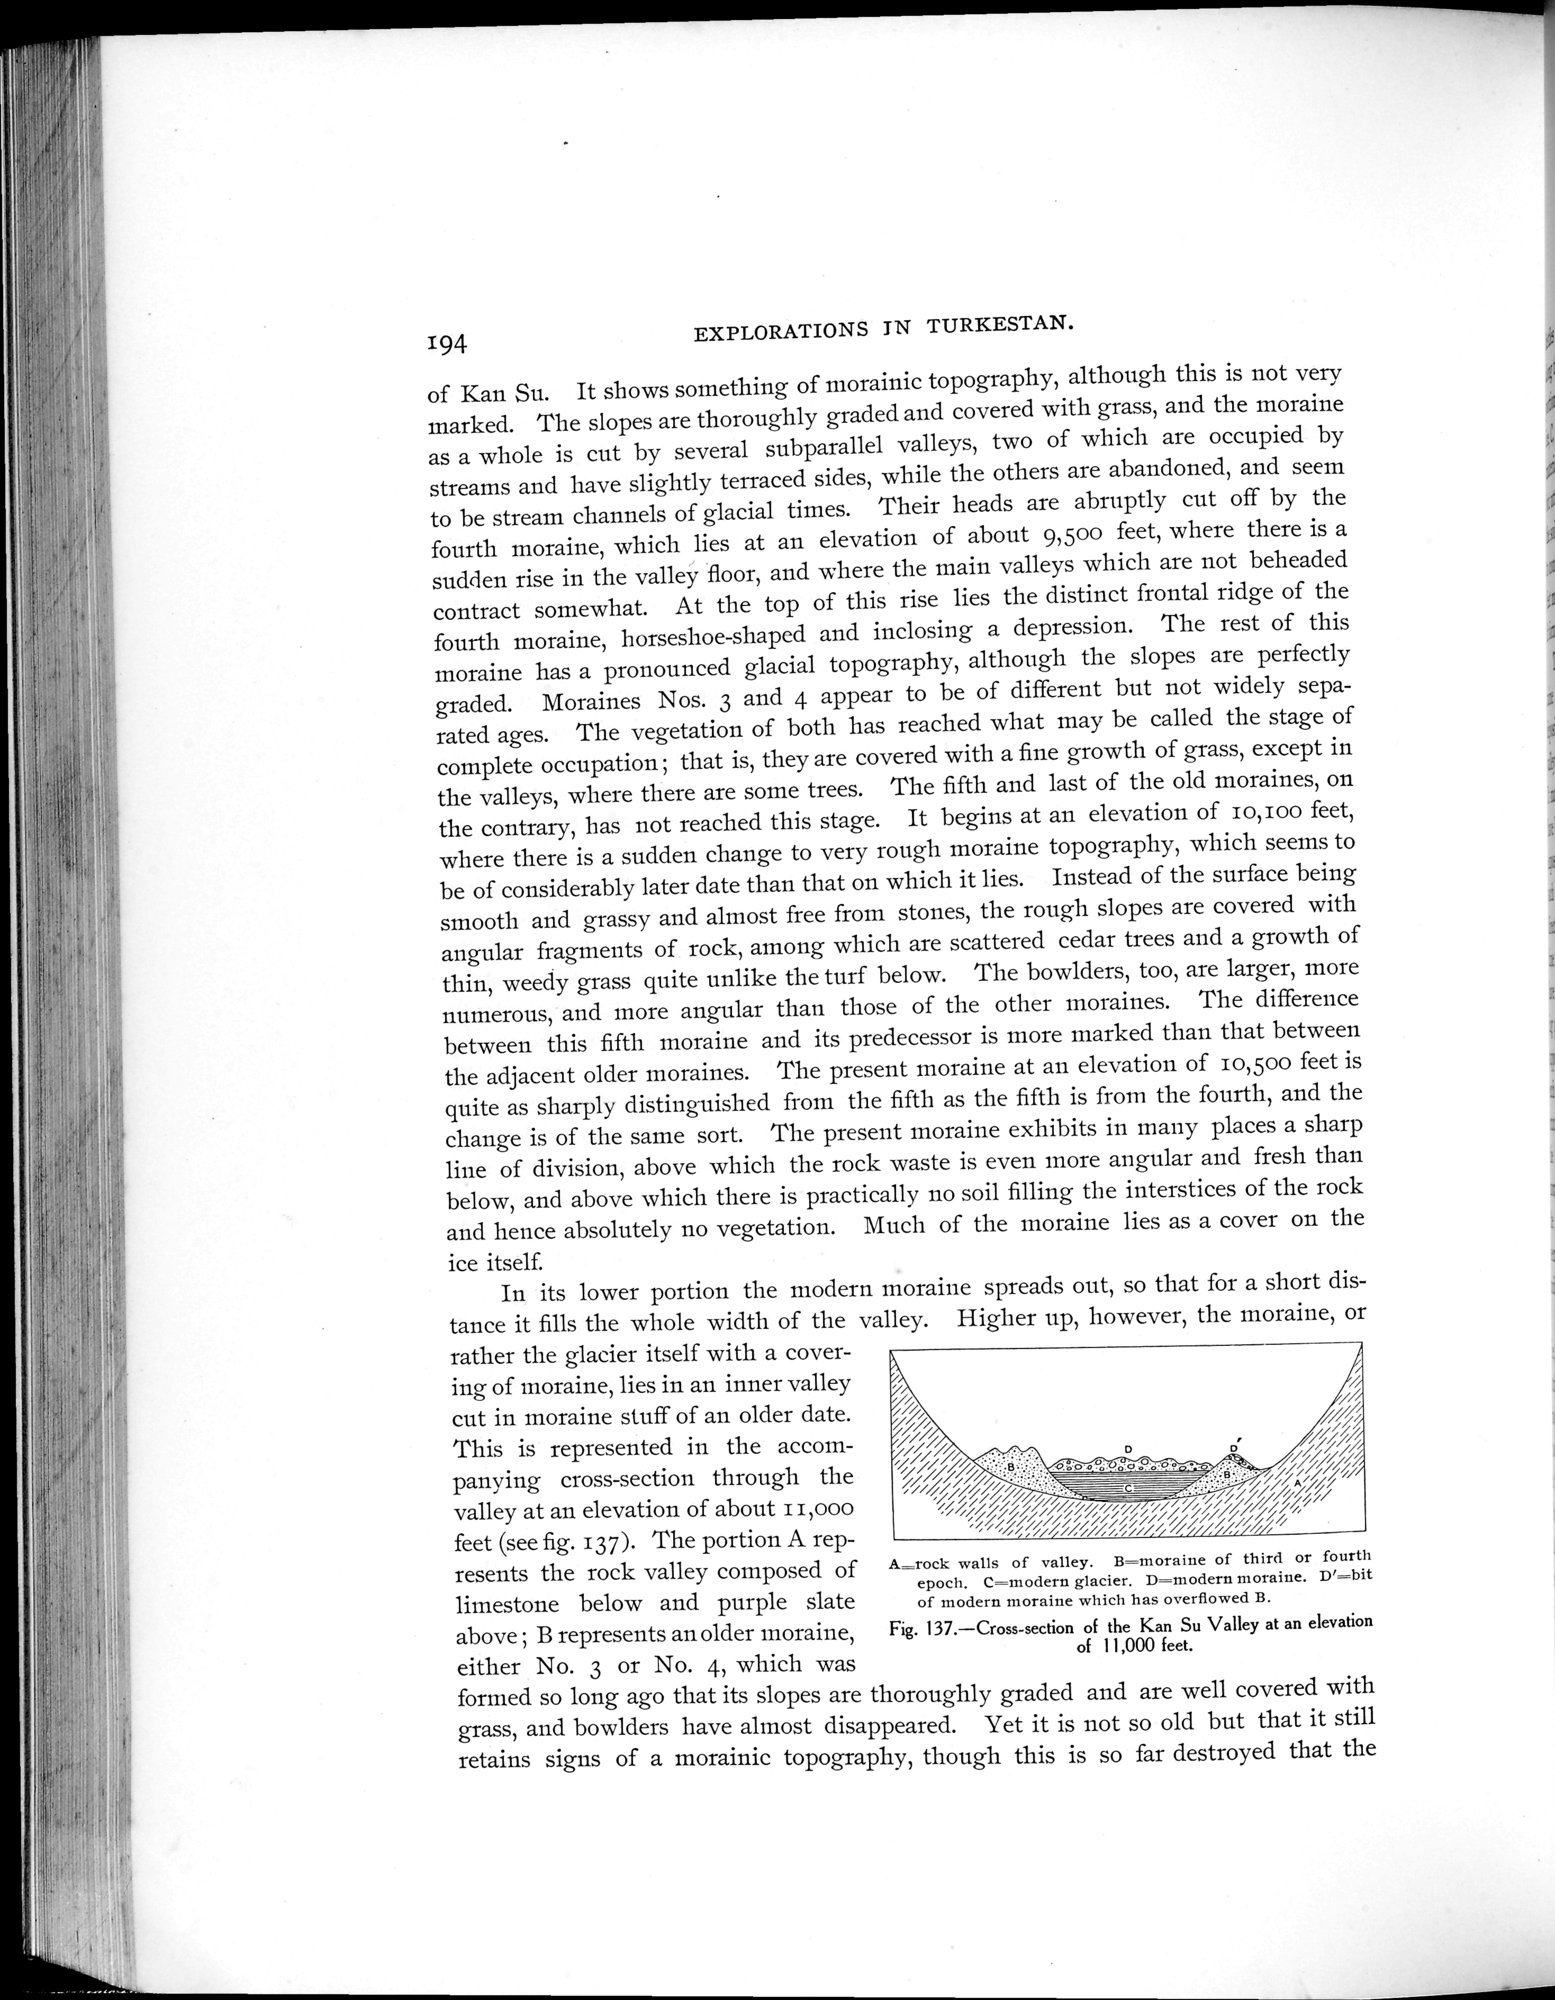 Explorations in Turkestan 1903 : vol.1 / Page 224 (Grayscale High Resolution Image)